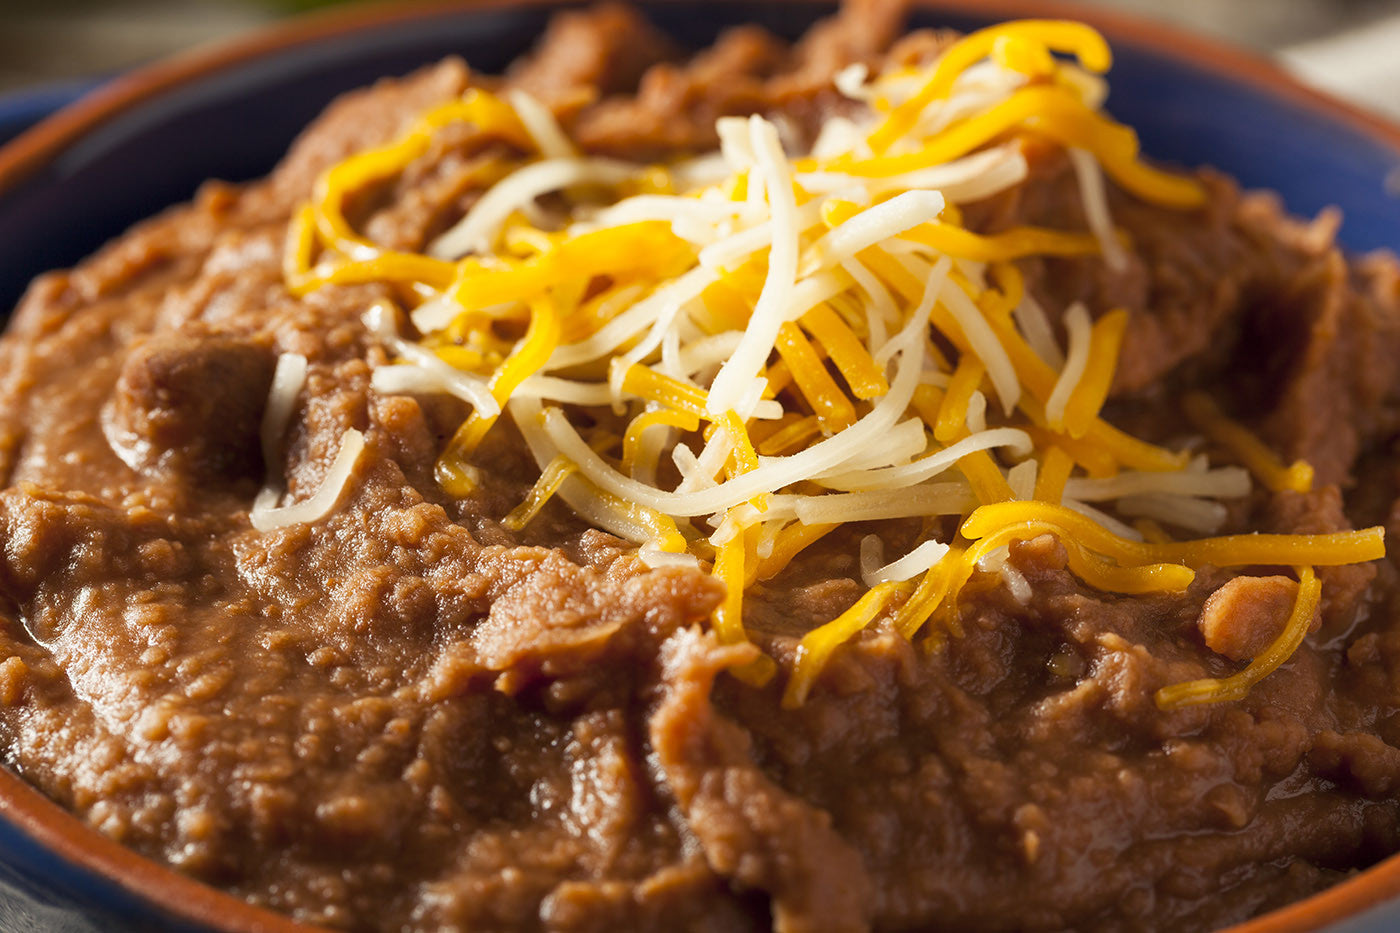 Spicy Mexican Refried Bean Dip